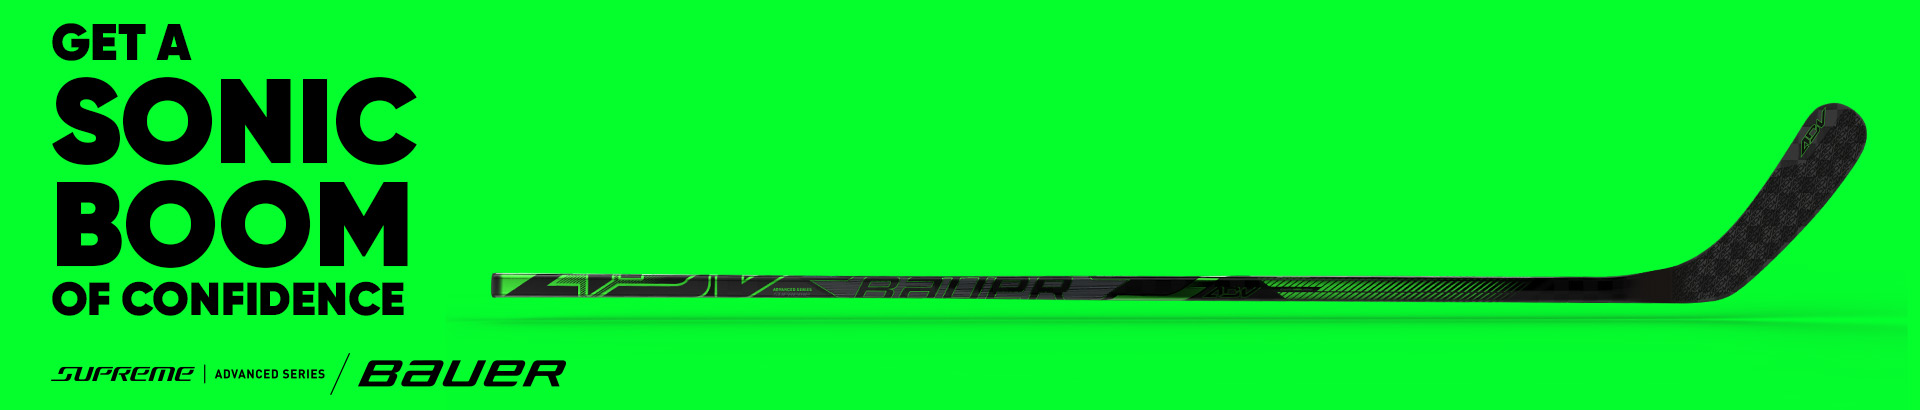 Find The Bauer Supreme ADV Advanced Series Hockey Stick At Participating Source For Sports Hockey Stores Near You.